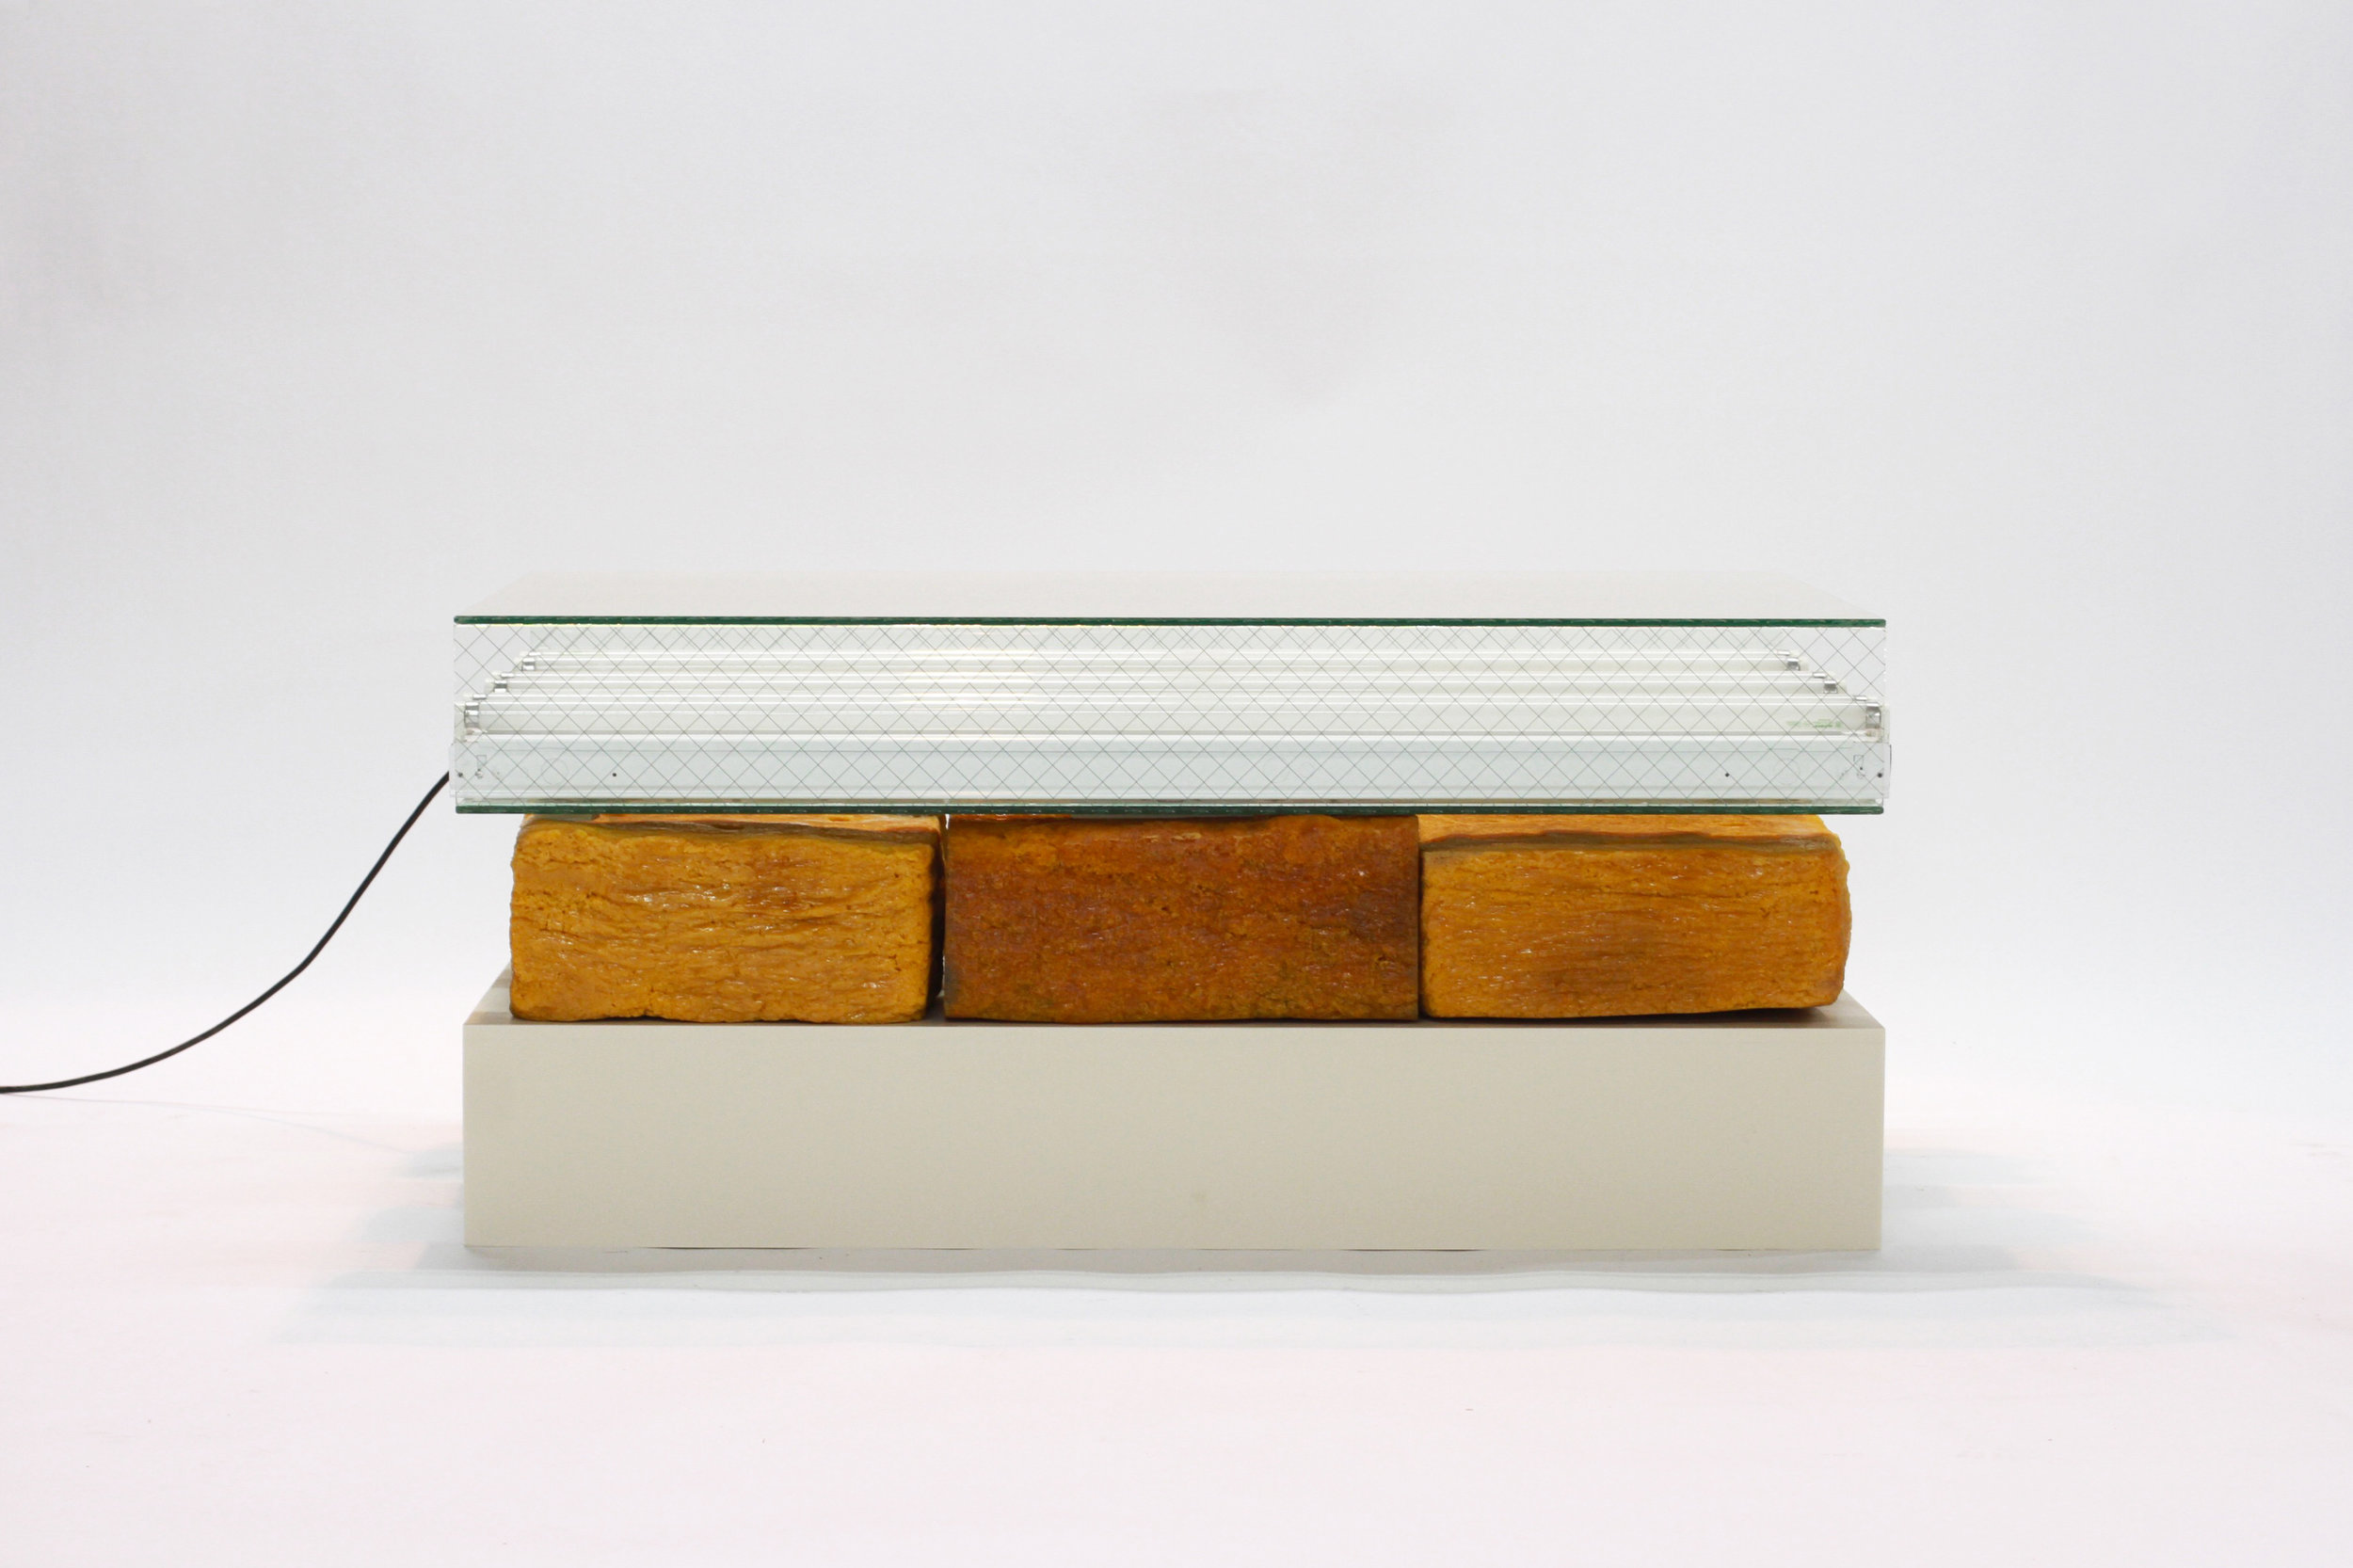 Lamp: Three tiered assemblage of a Corian platform, rubber bales, and fluorescent fixtures arrayed in wire glass